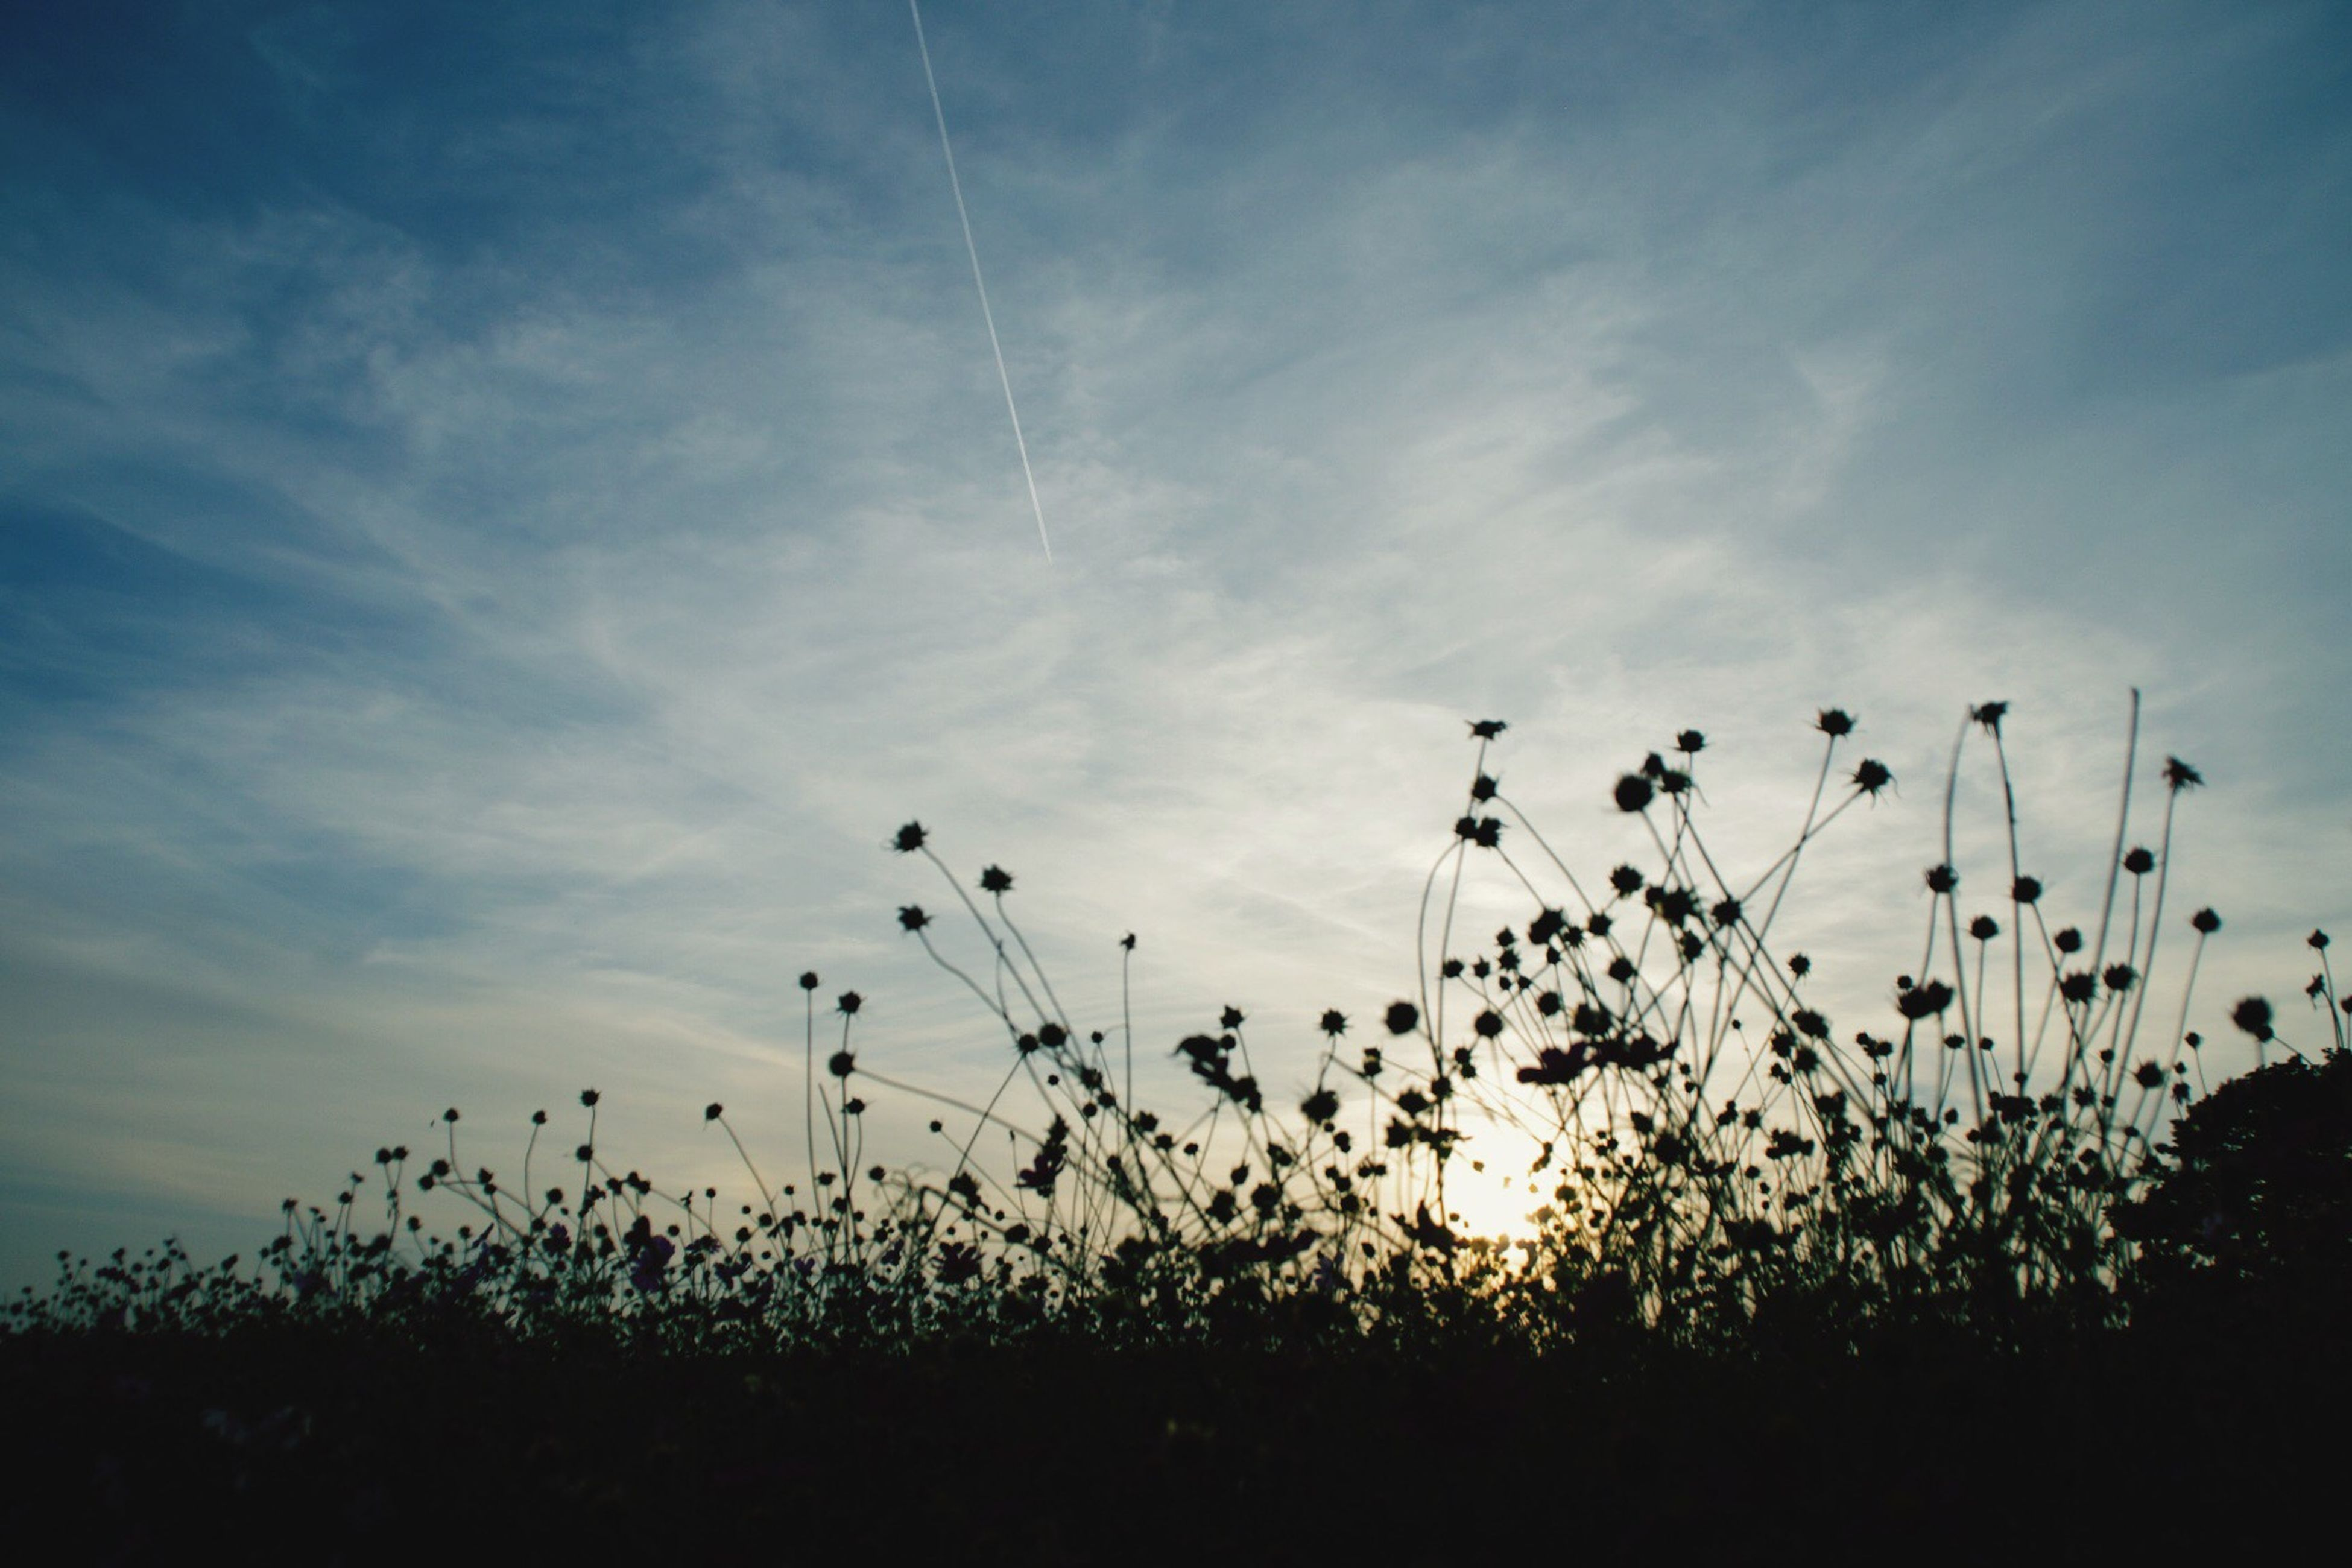 growth, plant, sky, sunset, nature, beauty in nature, field, flower, tranquility, silhouette, stem, tranquil scene, grass, scenics, freshness, cloud - sky, focus on foreground, cloud, outdoors, no people